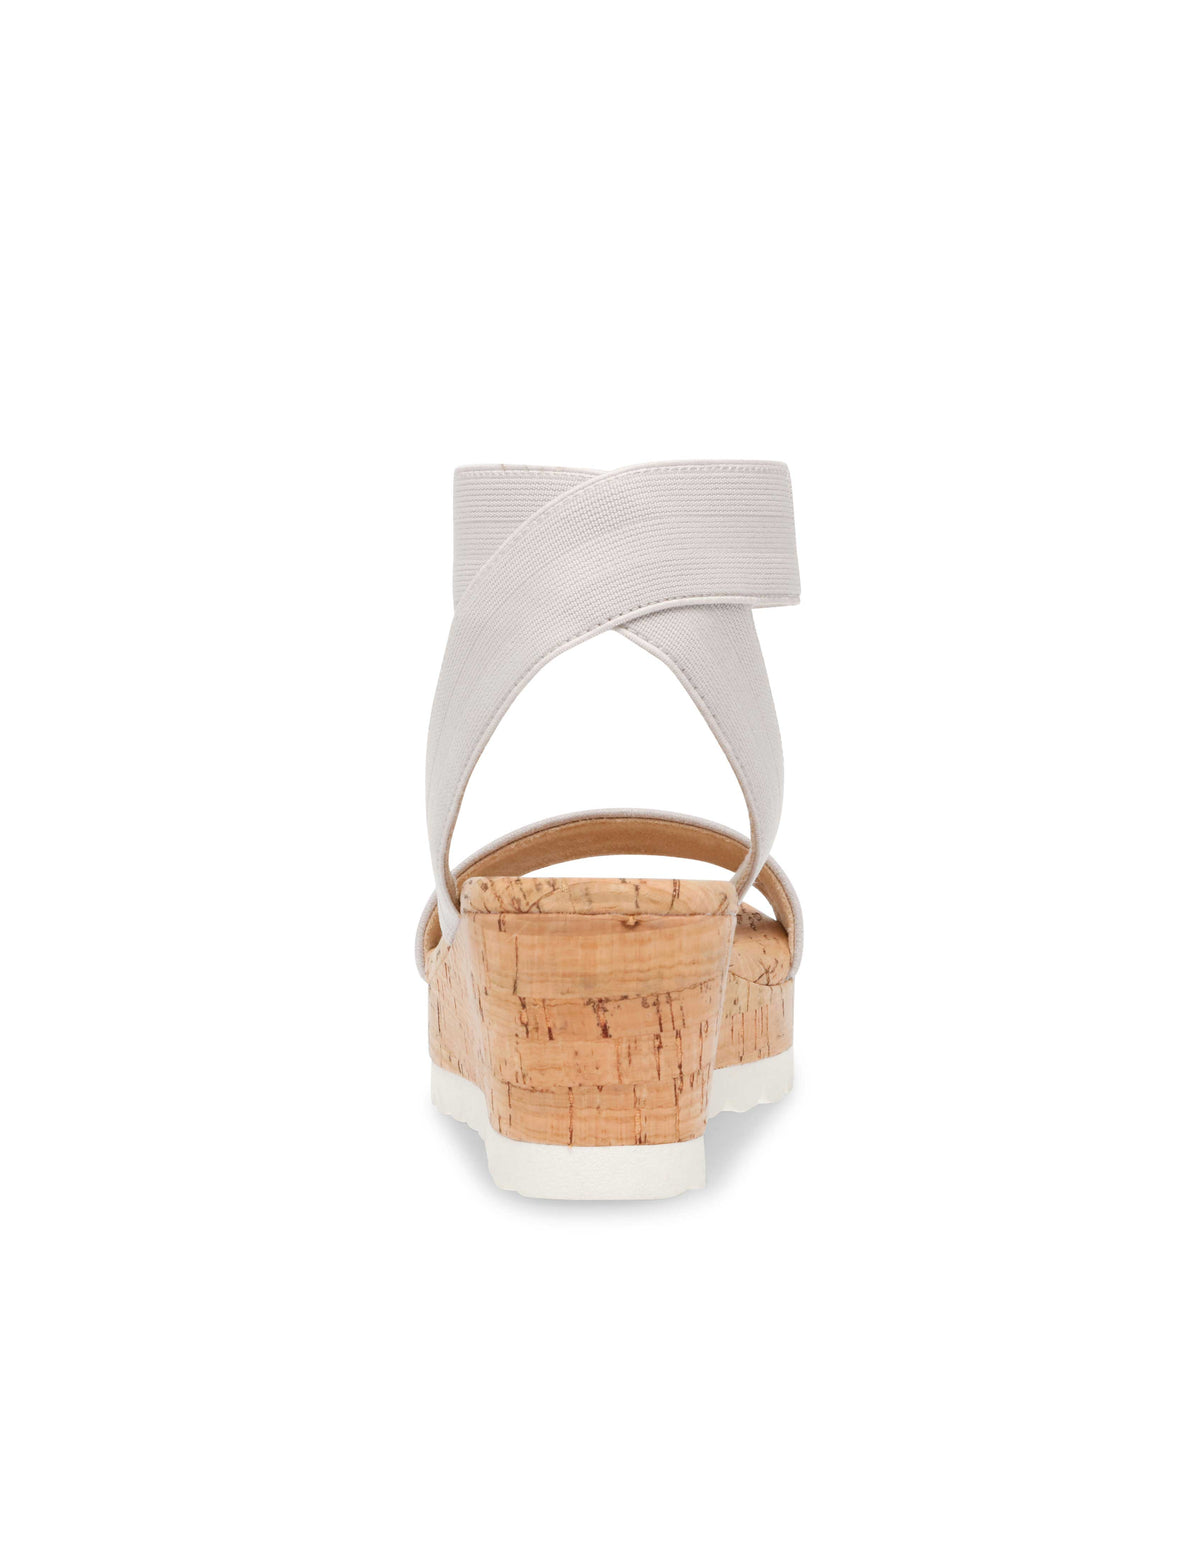 Nikki Cork Platform Wedge Sandals